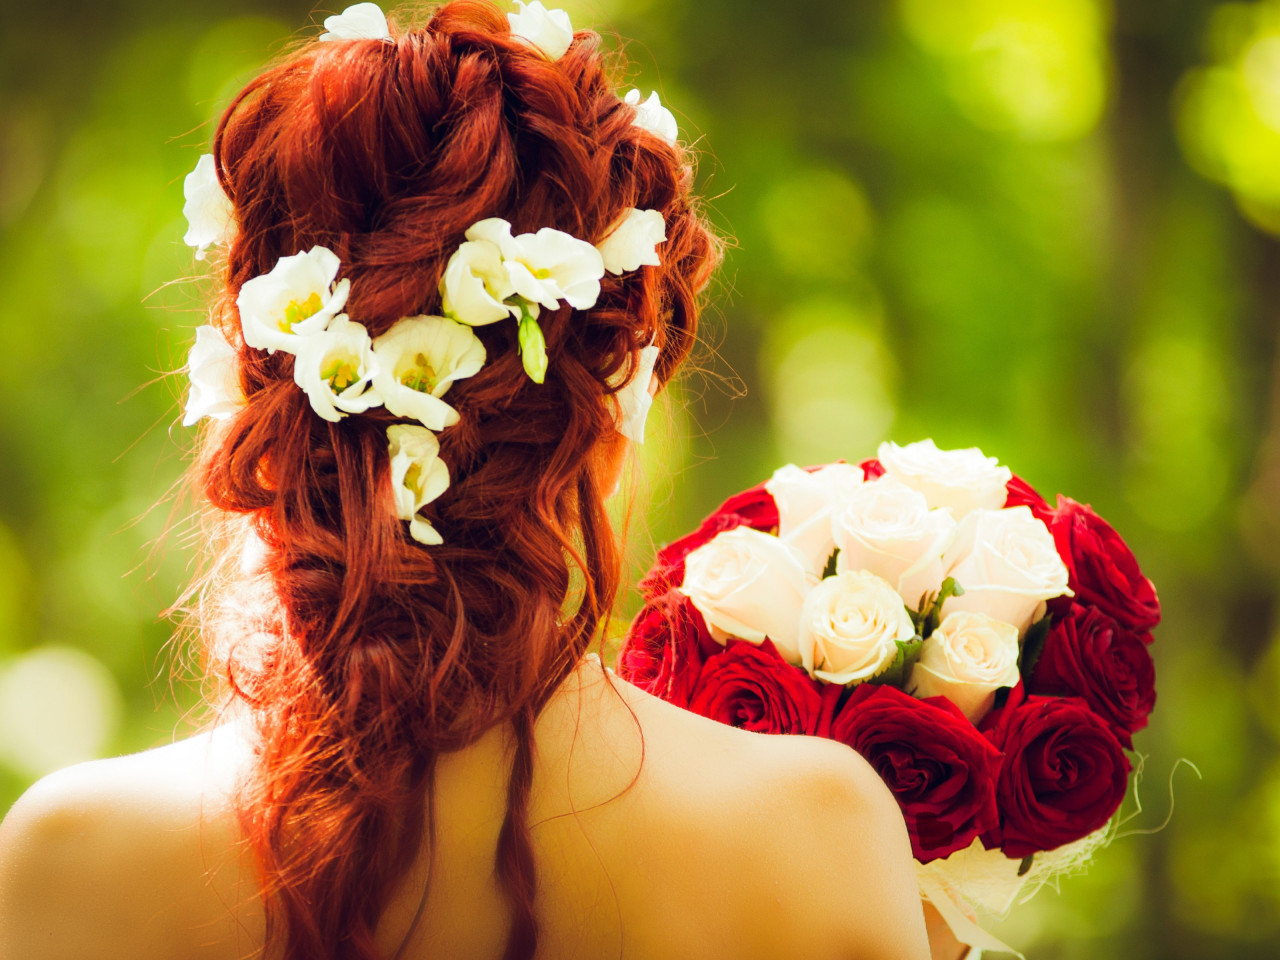 Bride and wedding flowers | 1280x960 wallpaper